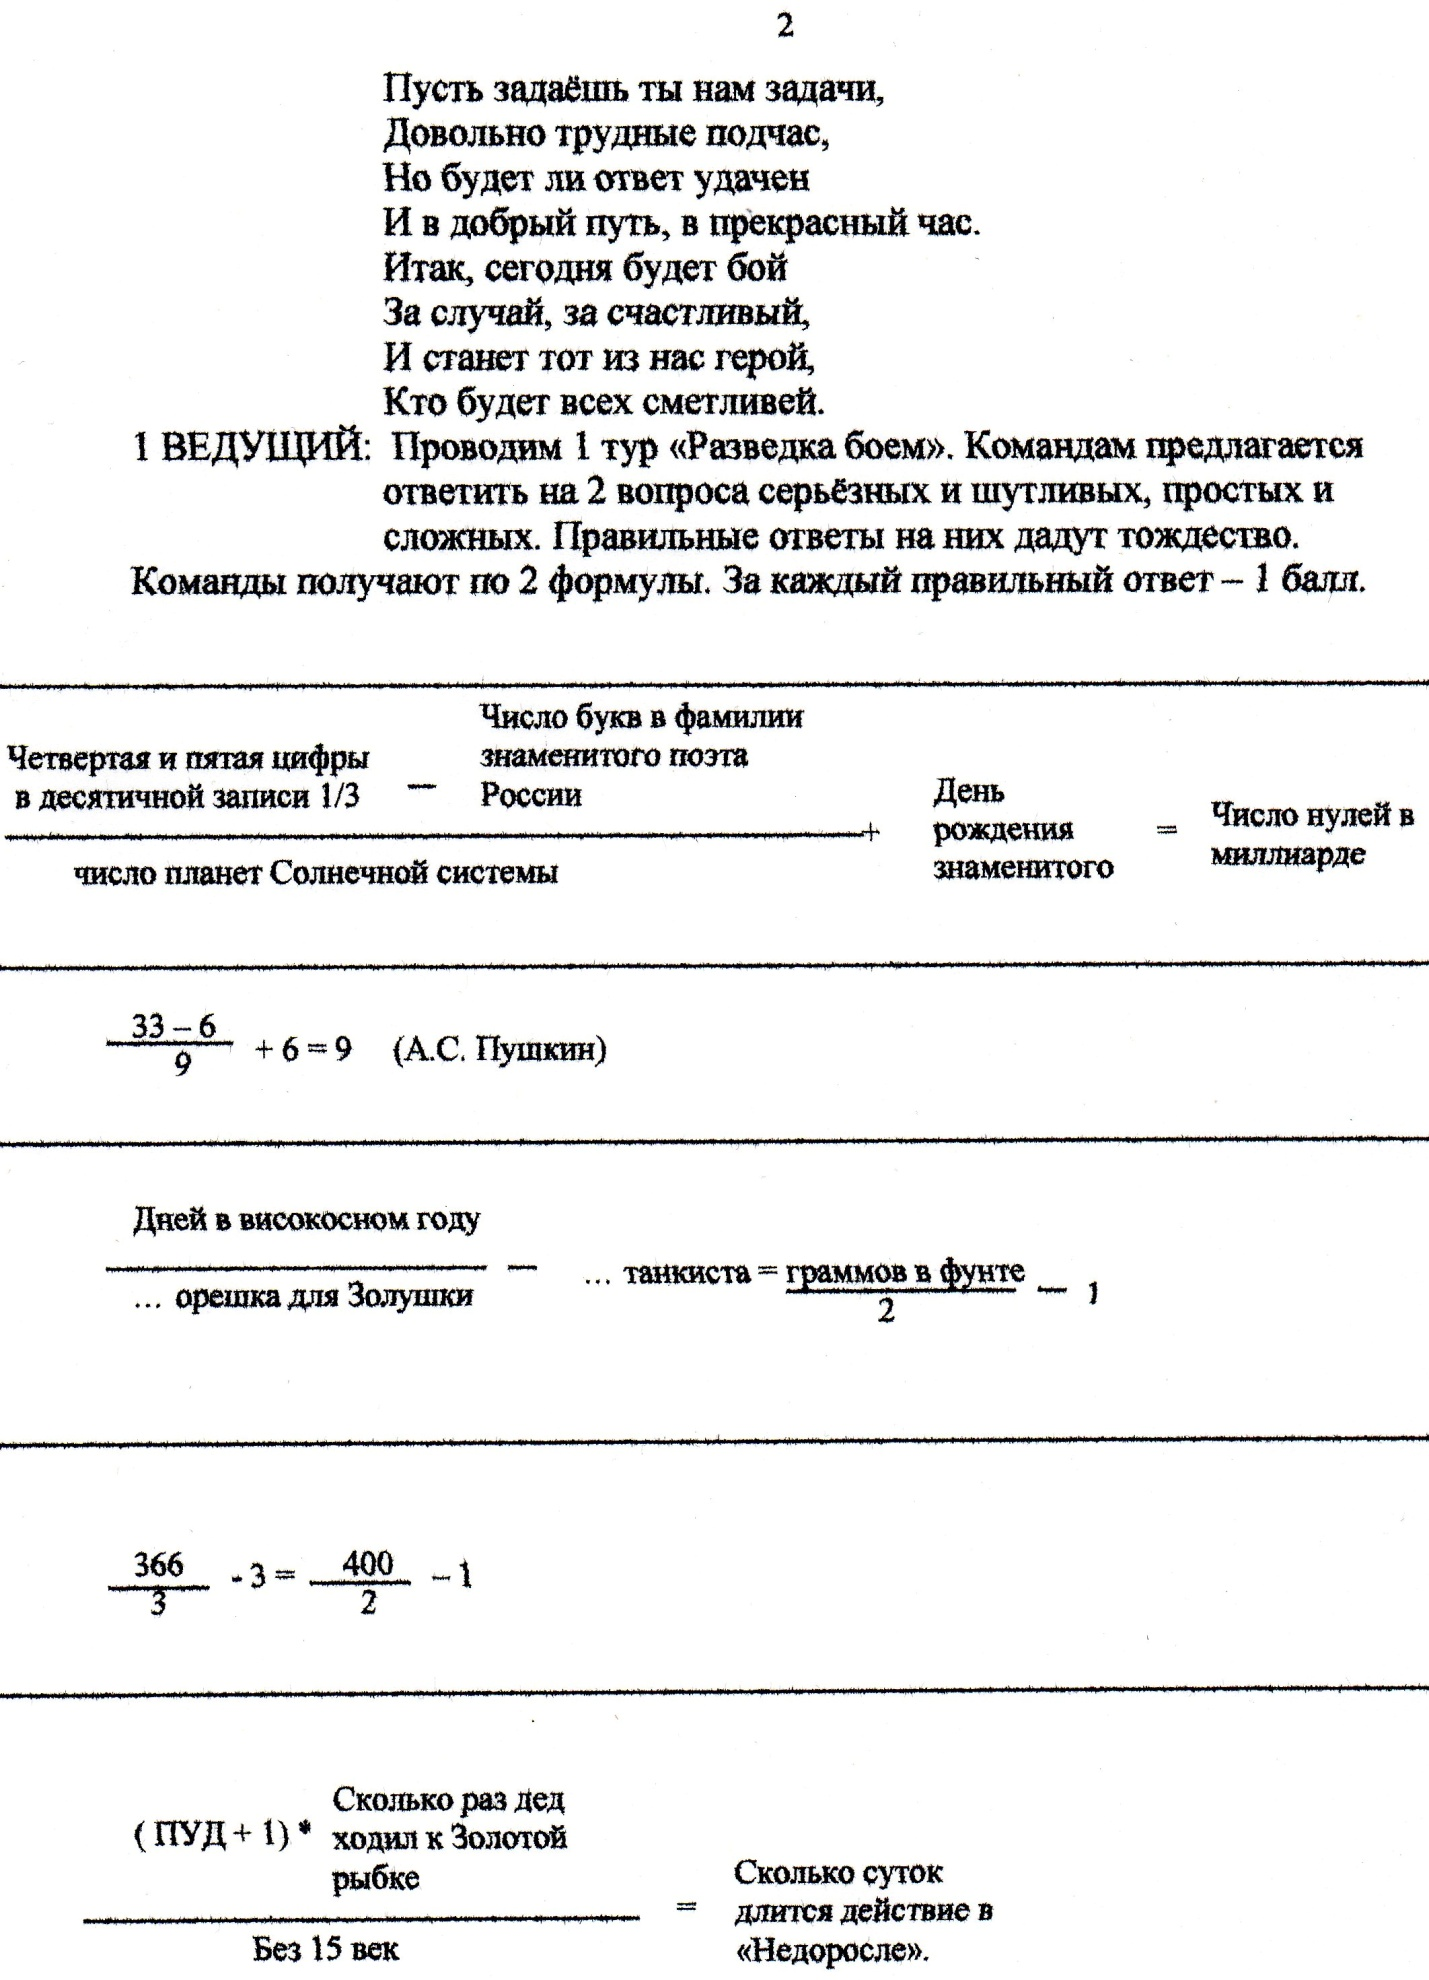 C:\Users\Валентина\Pictures\img173.jpg